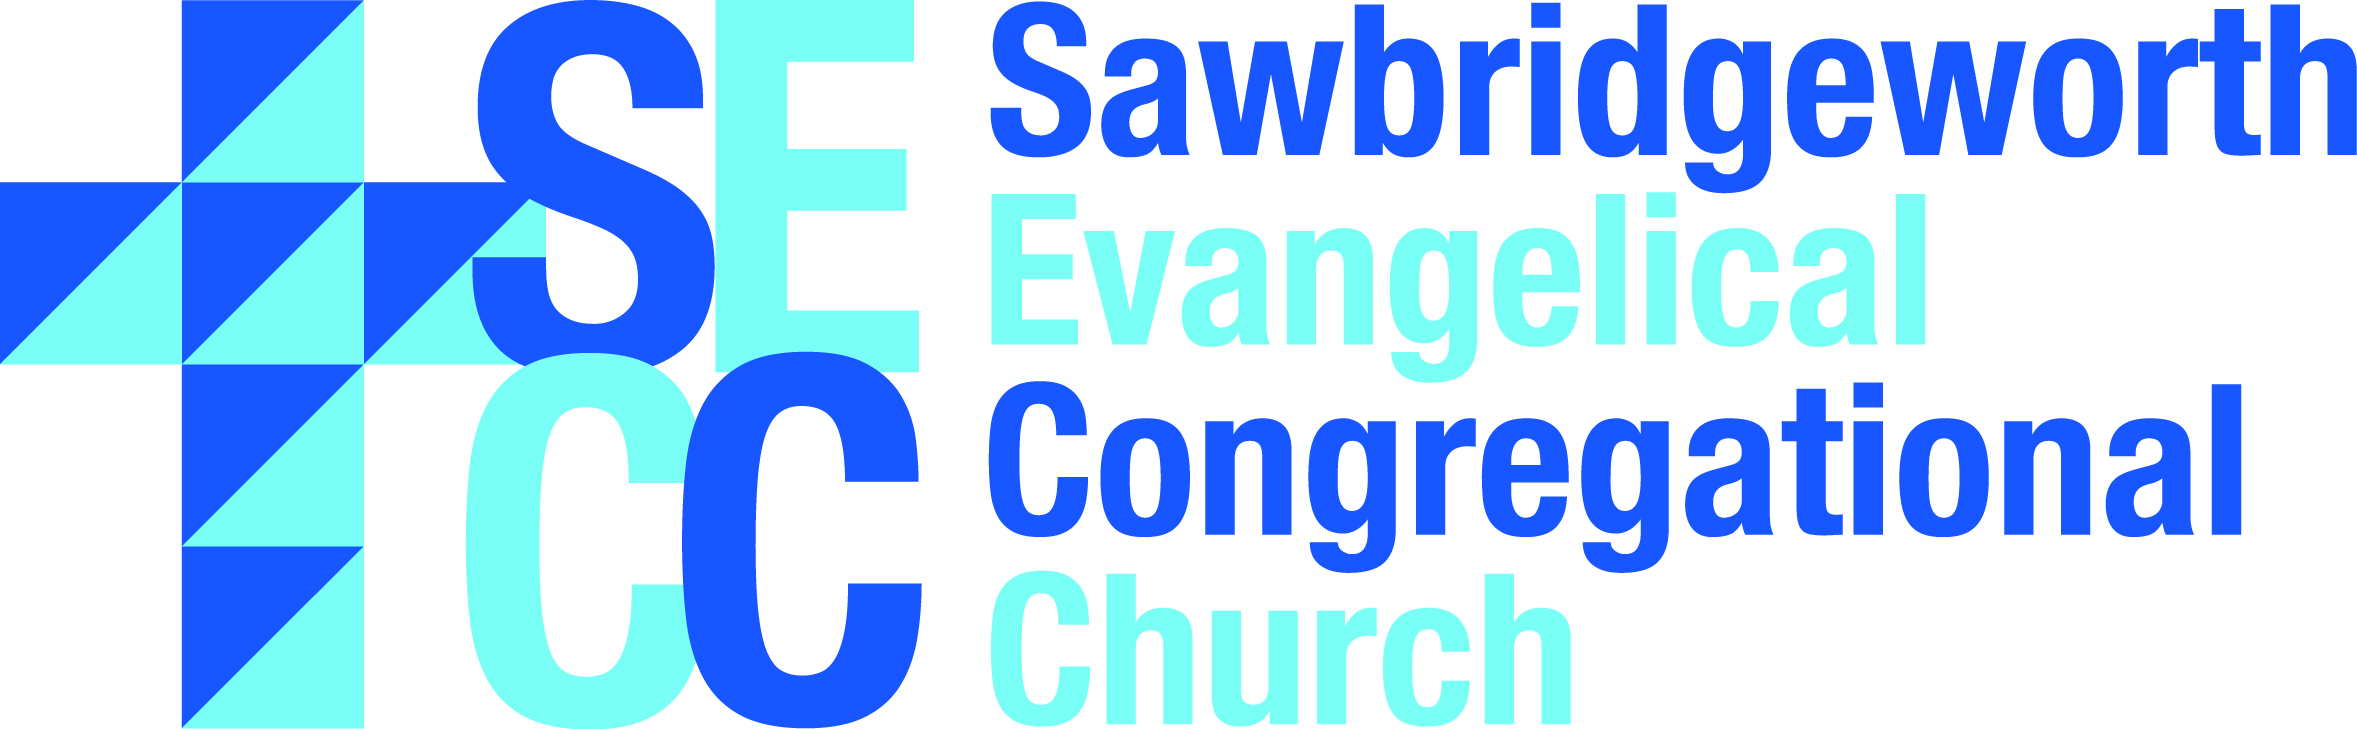 Community of Sawbridgeworth